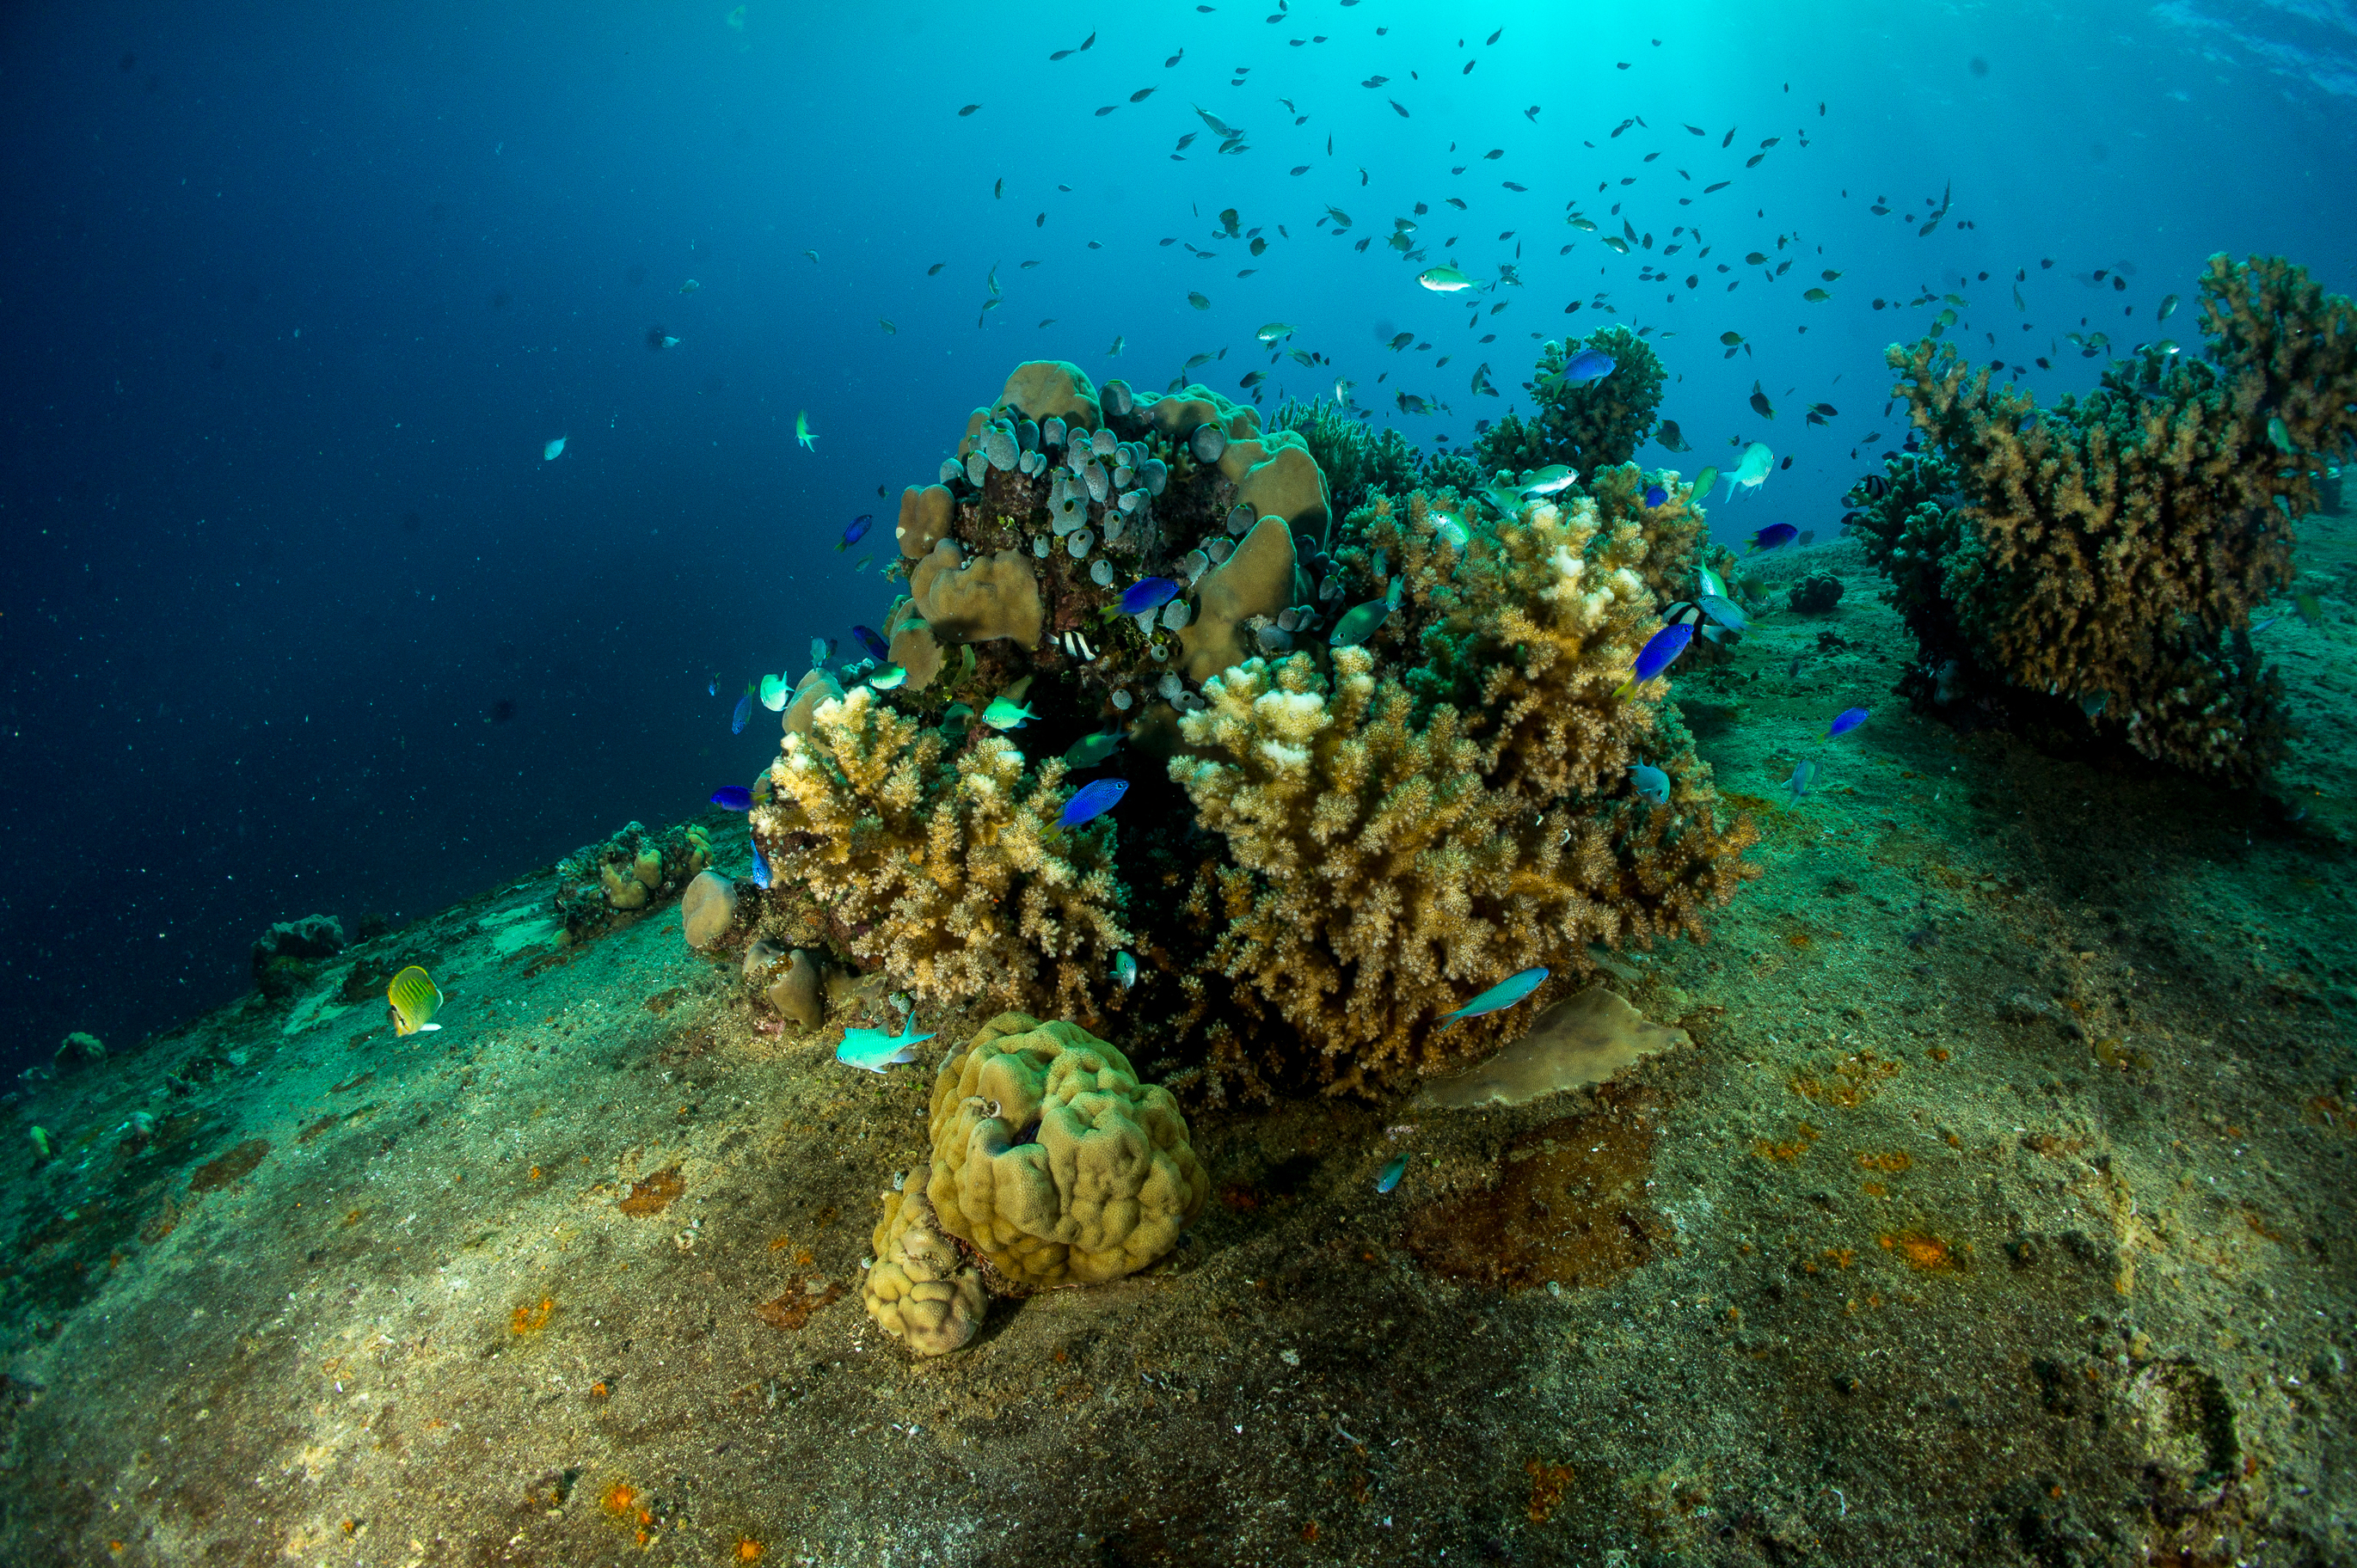 Coral growth on the hull of a sunken WWII cargo ship, Gosei Maru, at chuuk lagoon